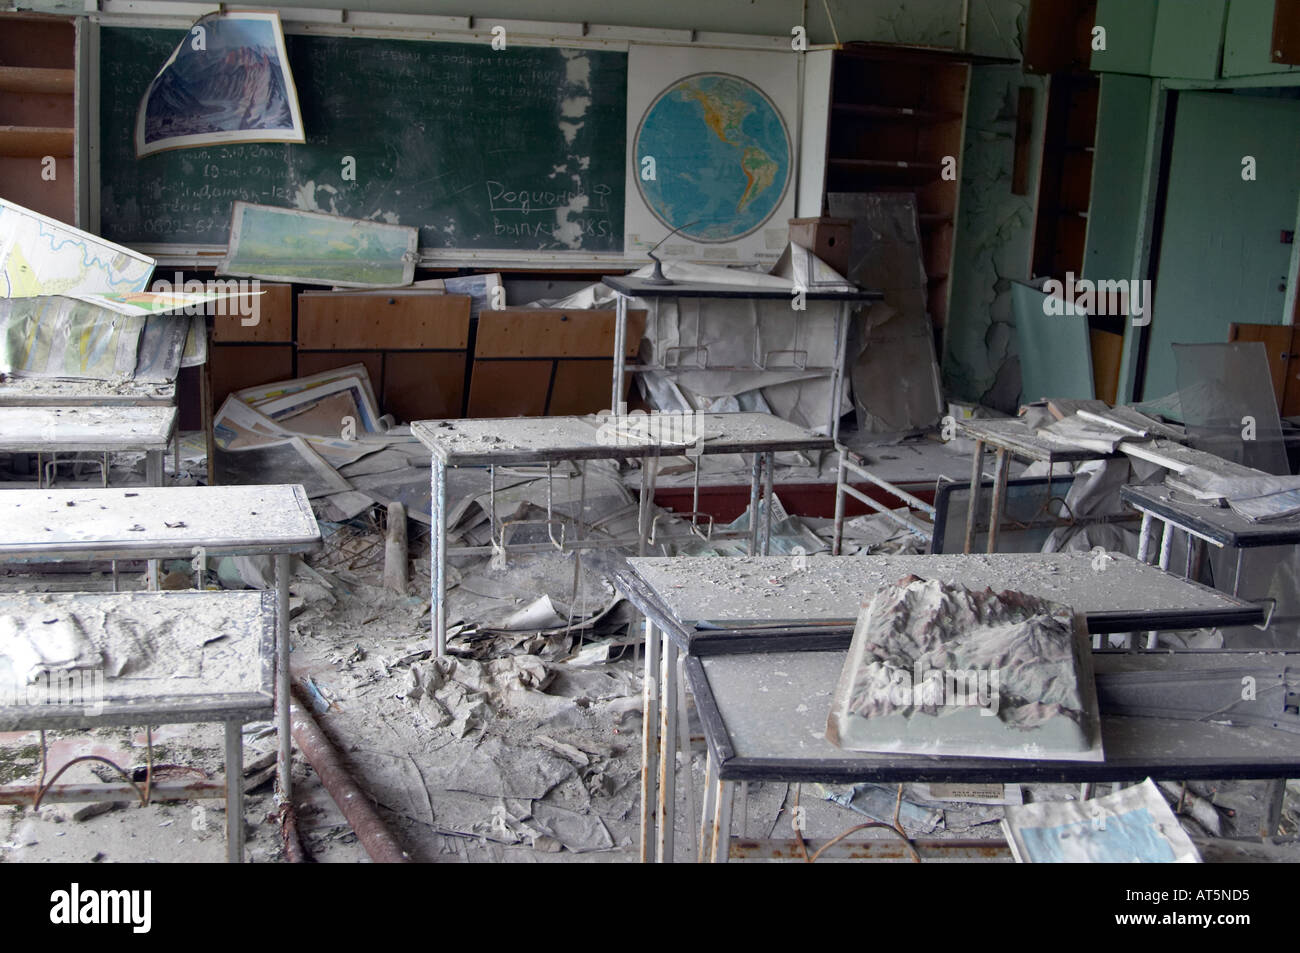 a school in Prypiat (Chernobyl), Ukraine. 19 years after disaster. - Stock Image